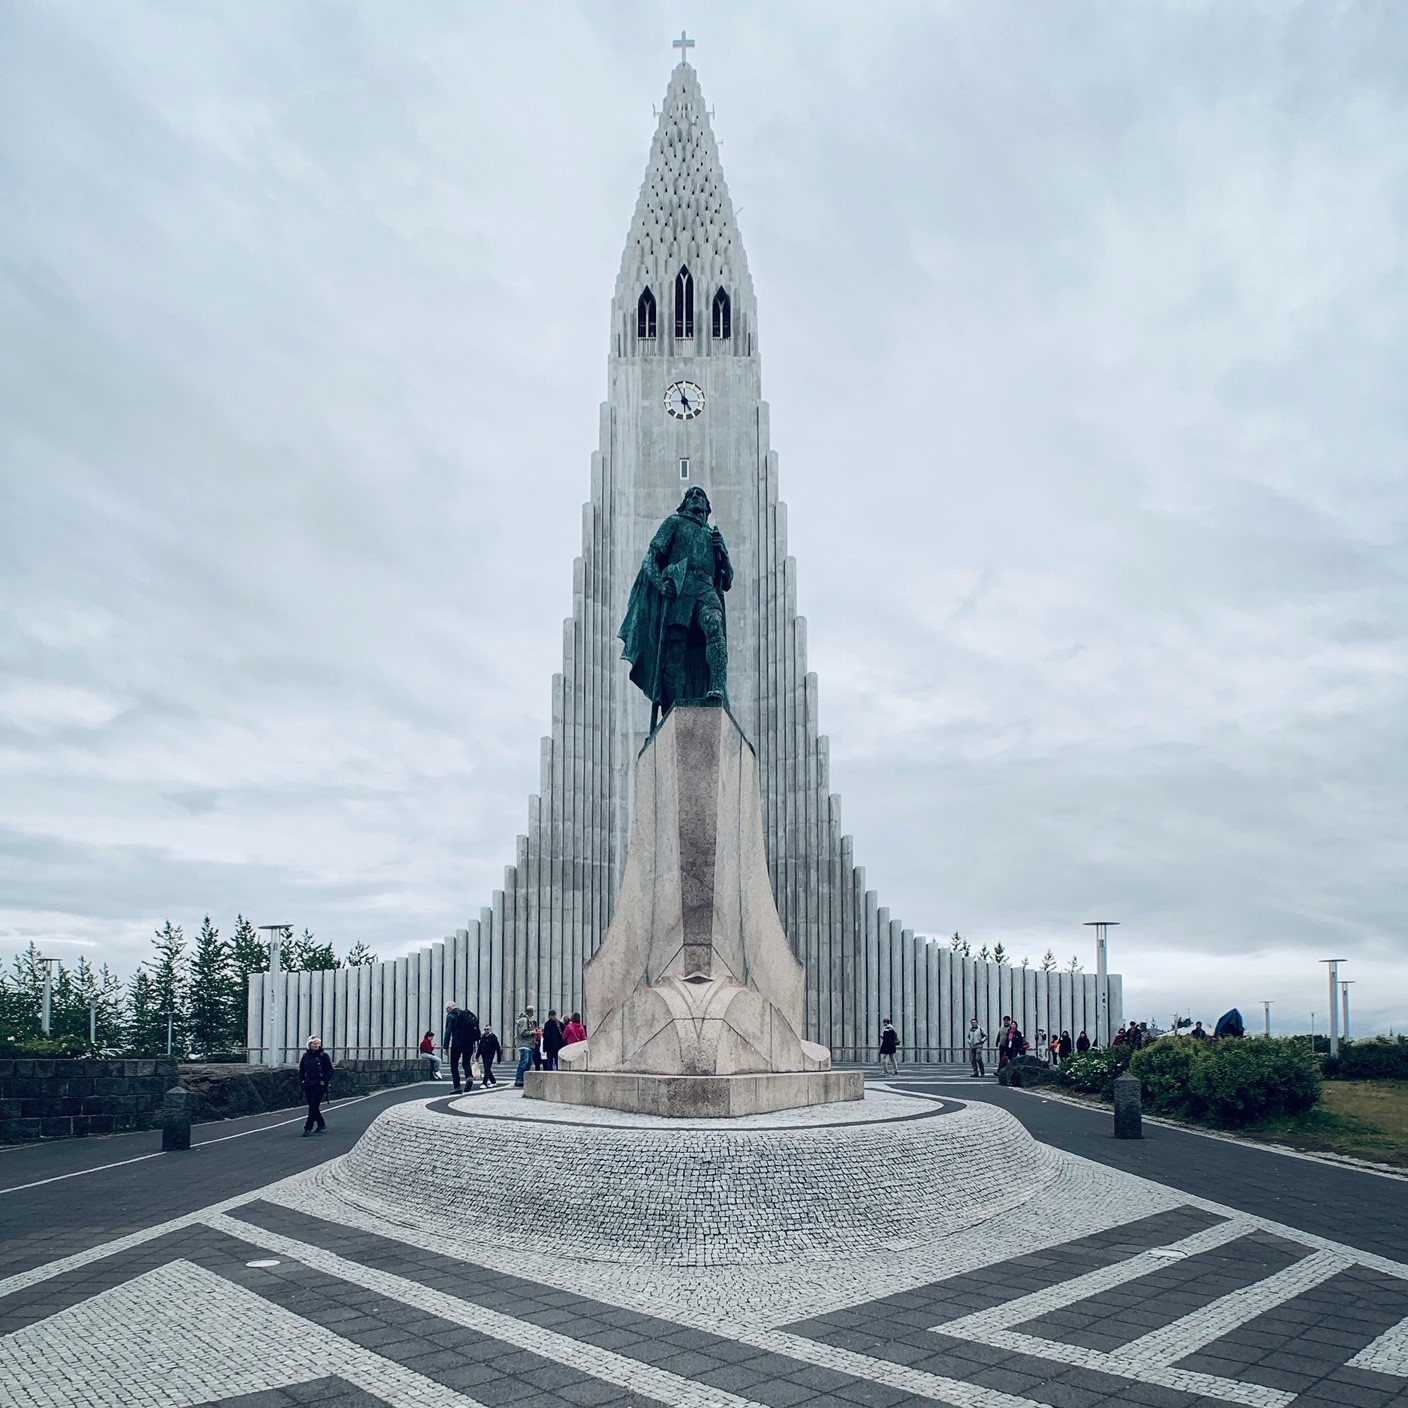 Hallgrímskirkja, Reykjavik's famous church, with the statue of Leif Eriksson in front.